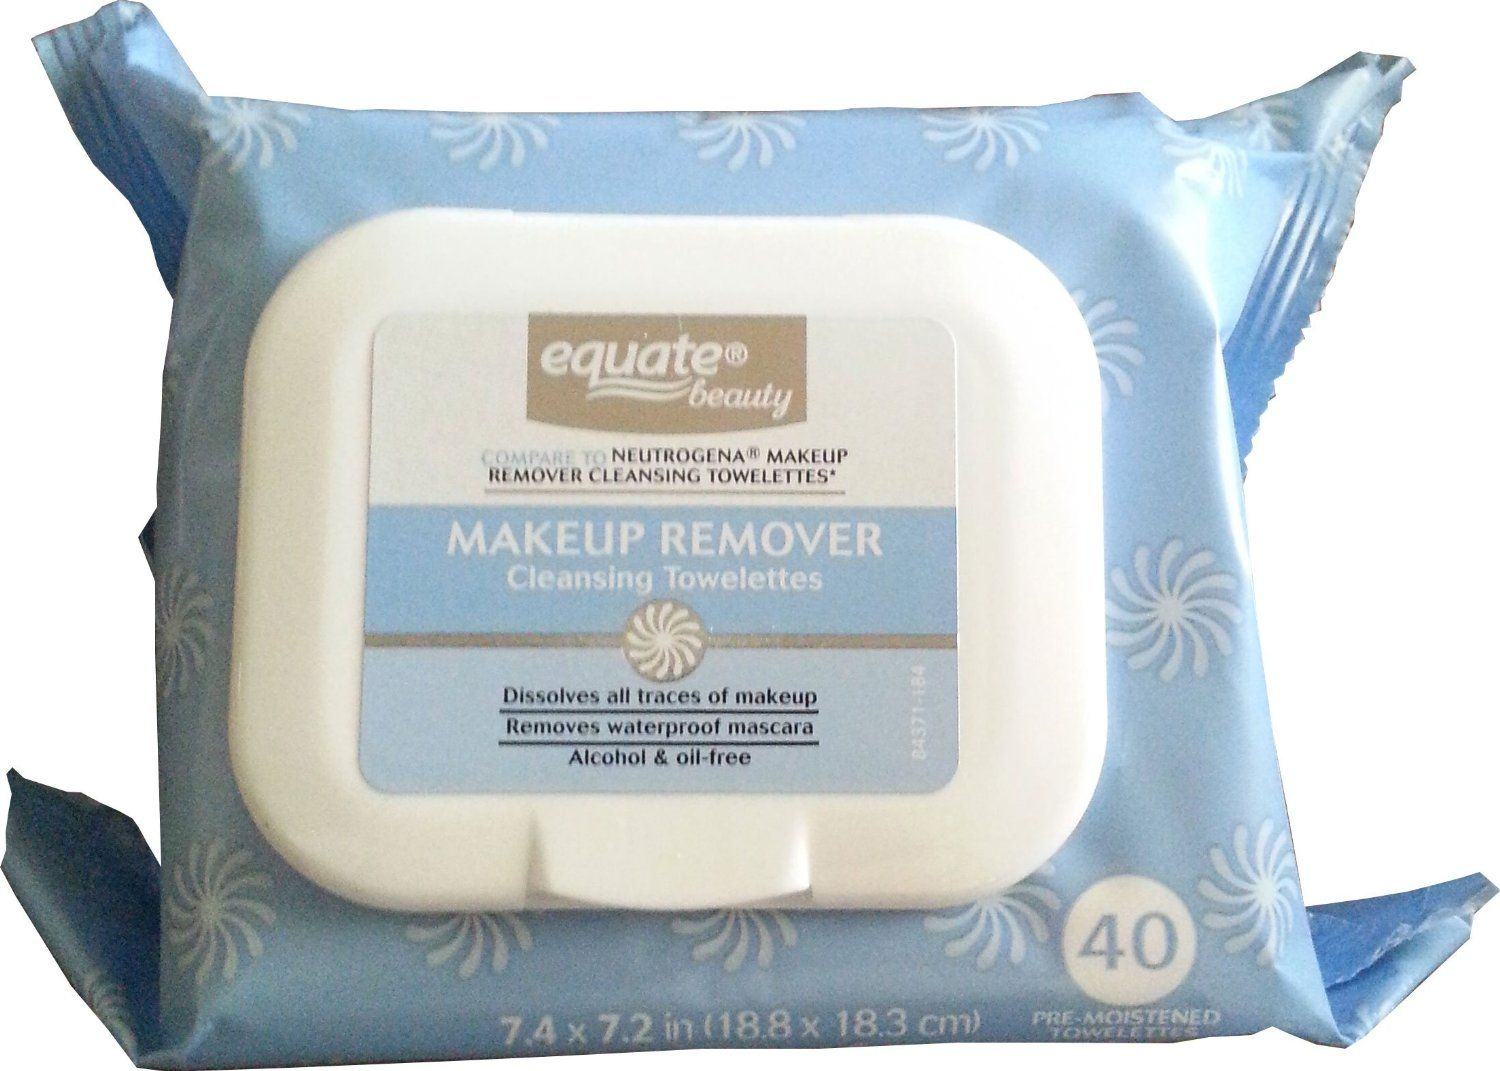 Equate Makeup Remover Cleansing Towelettes (Compare to Neutrogena)